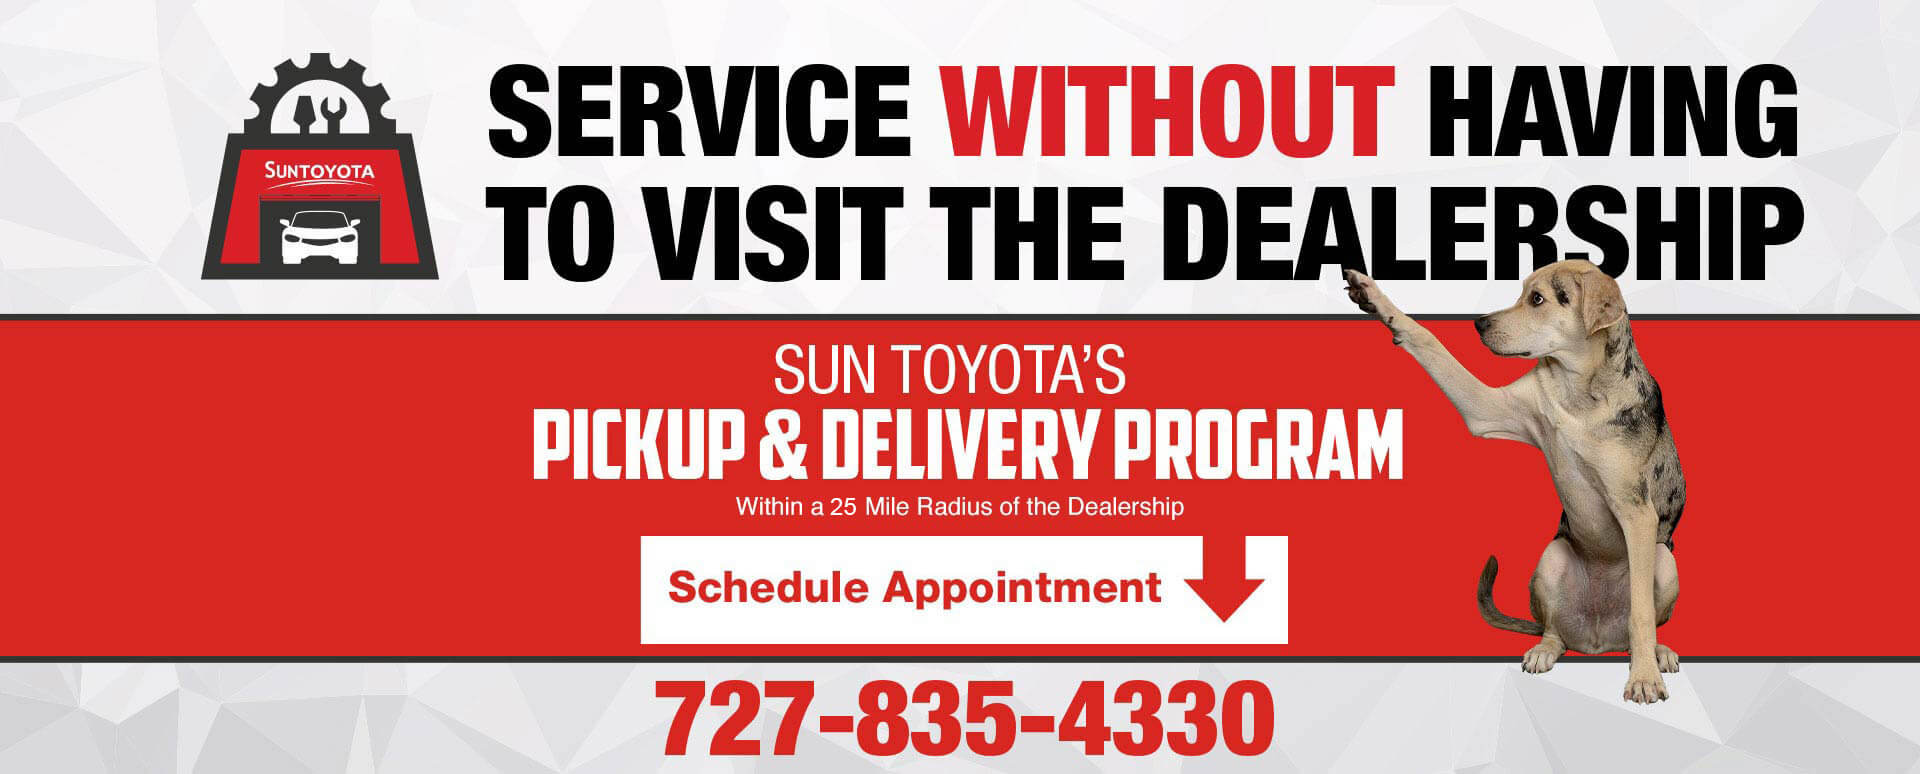 Service Without Having To Visit The Dealership | Sun Toyotas Pickup & Delivery Program